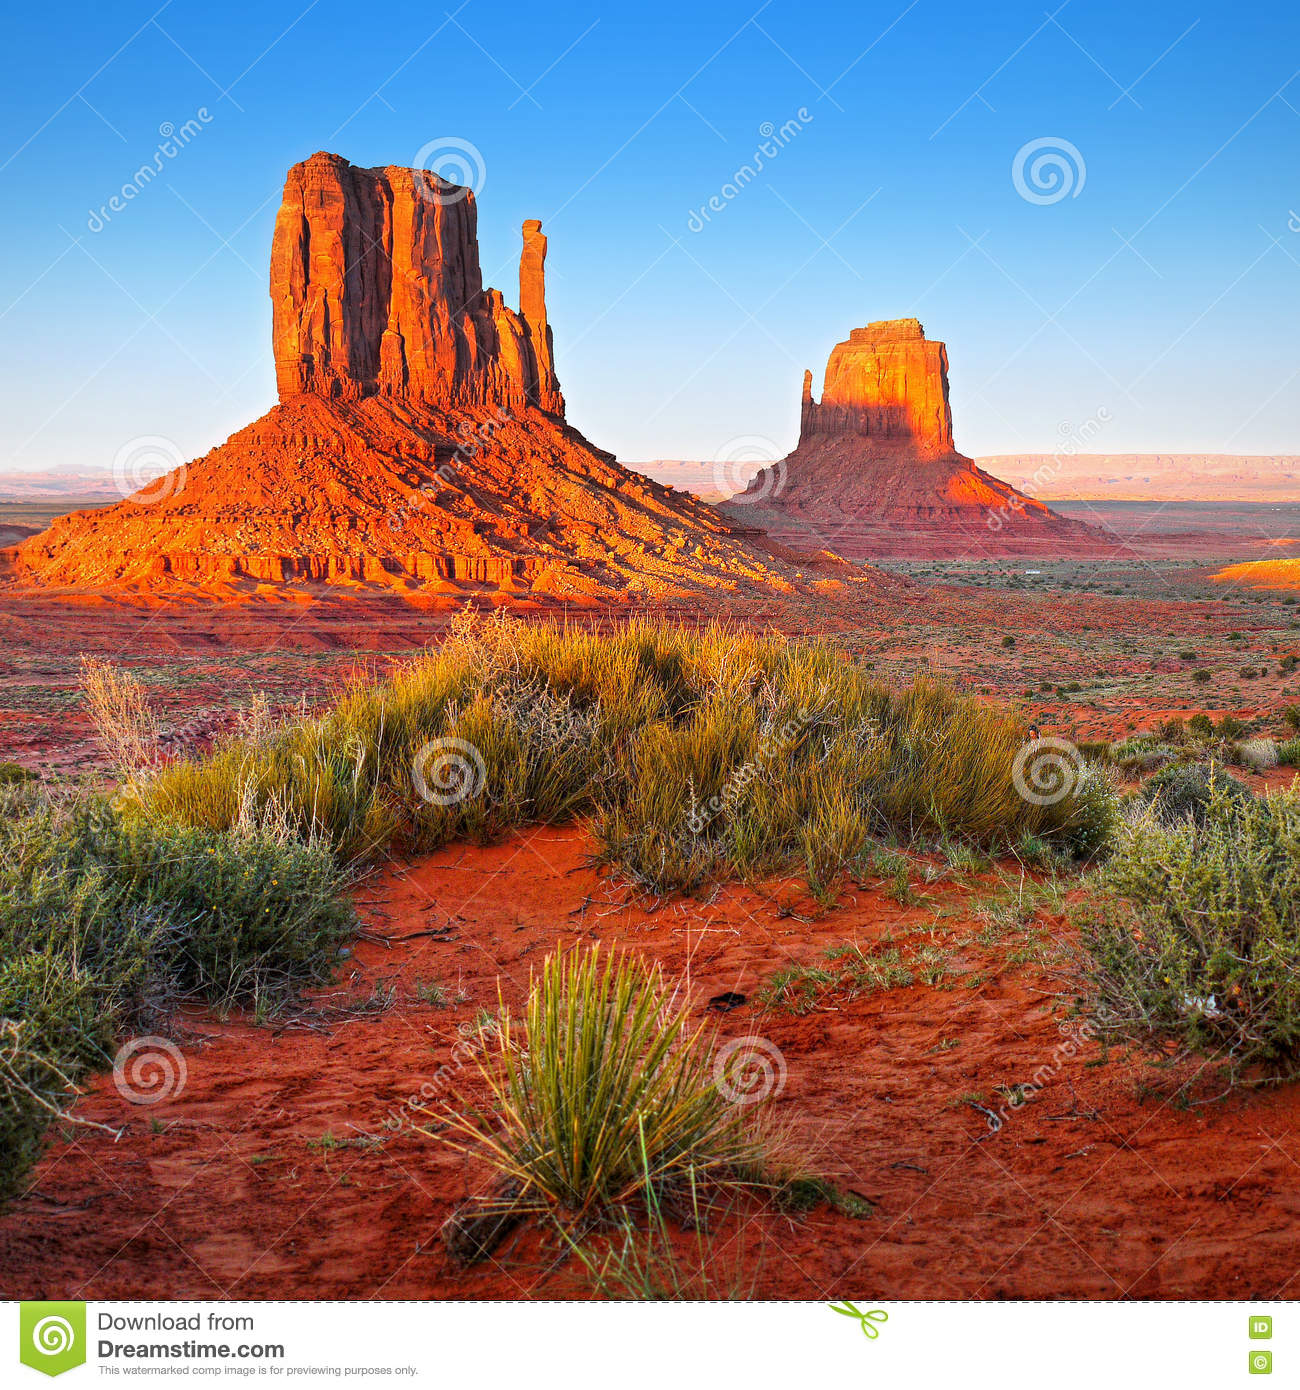 Desert Landscape in Arizona, Monument Valley - Desert Landscape In Arizona, Monument Valley Stock Image - Image Of